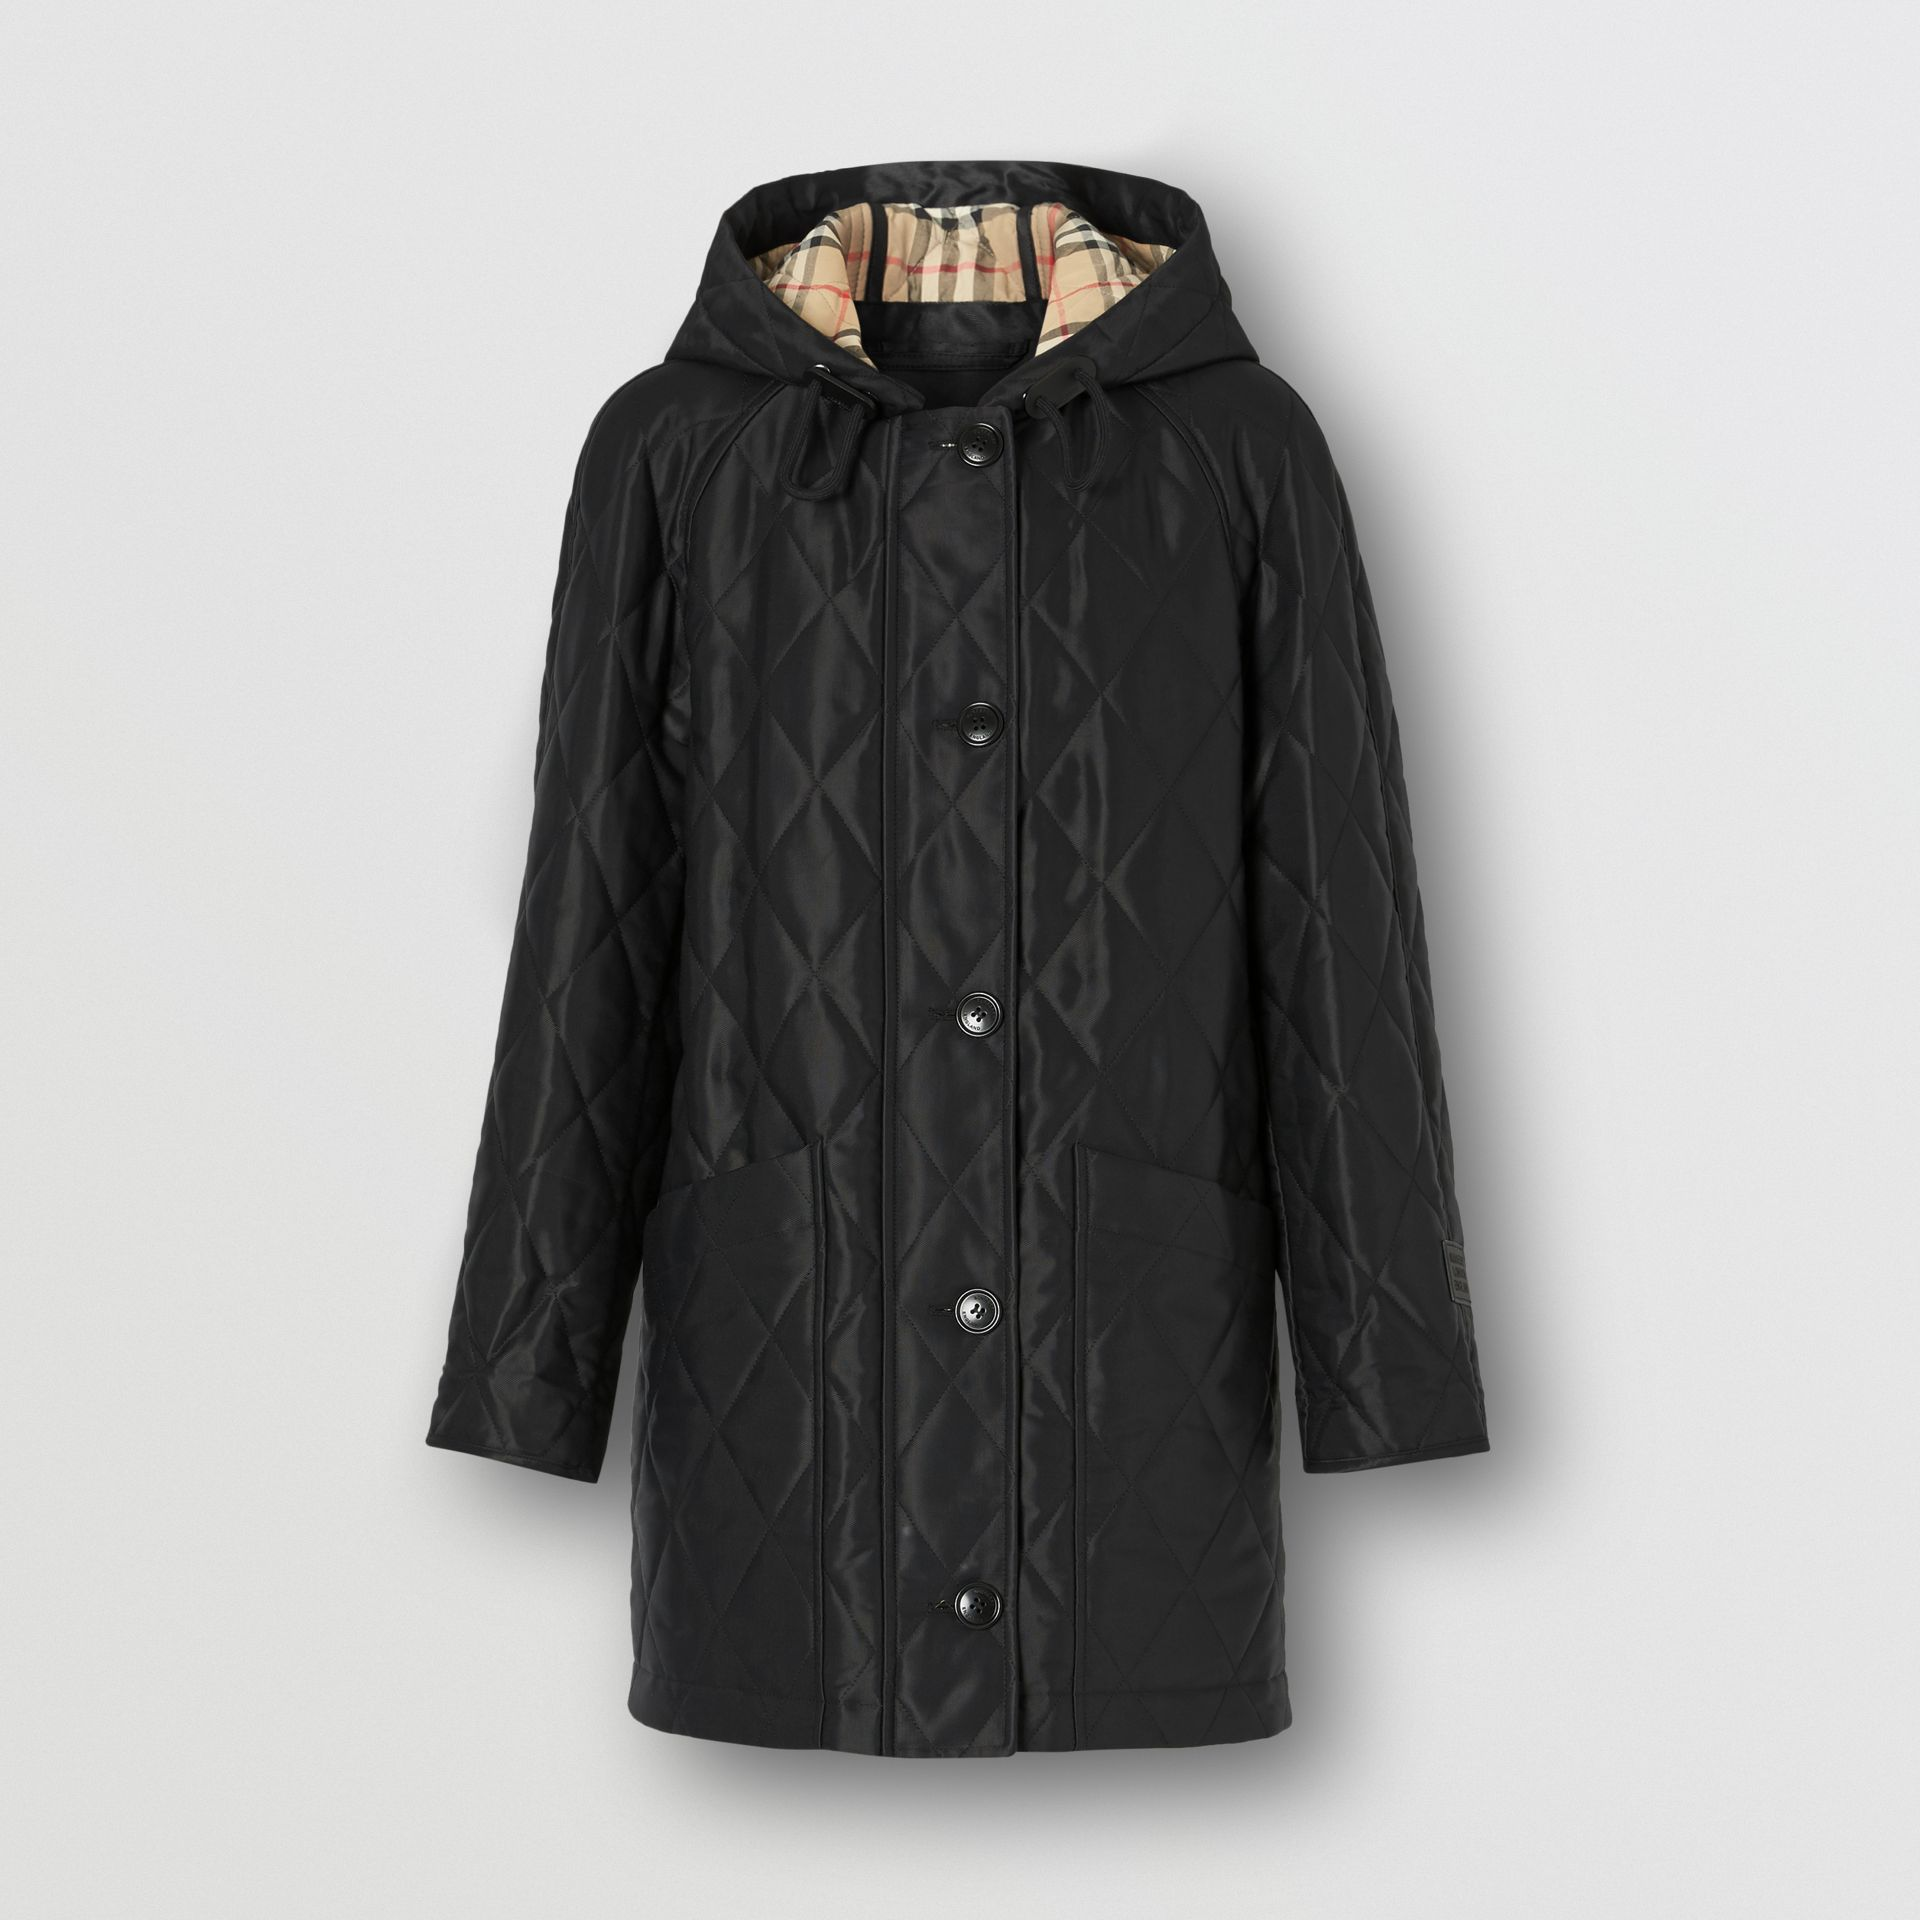 Diamond Quilted Cotton Blend Hooded Coat in Black - Women | Burberry - gallery image 3